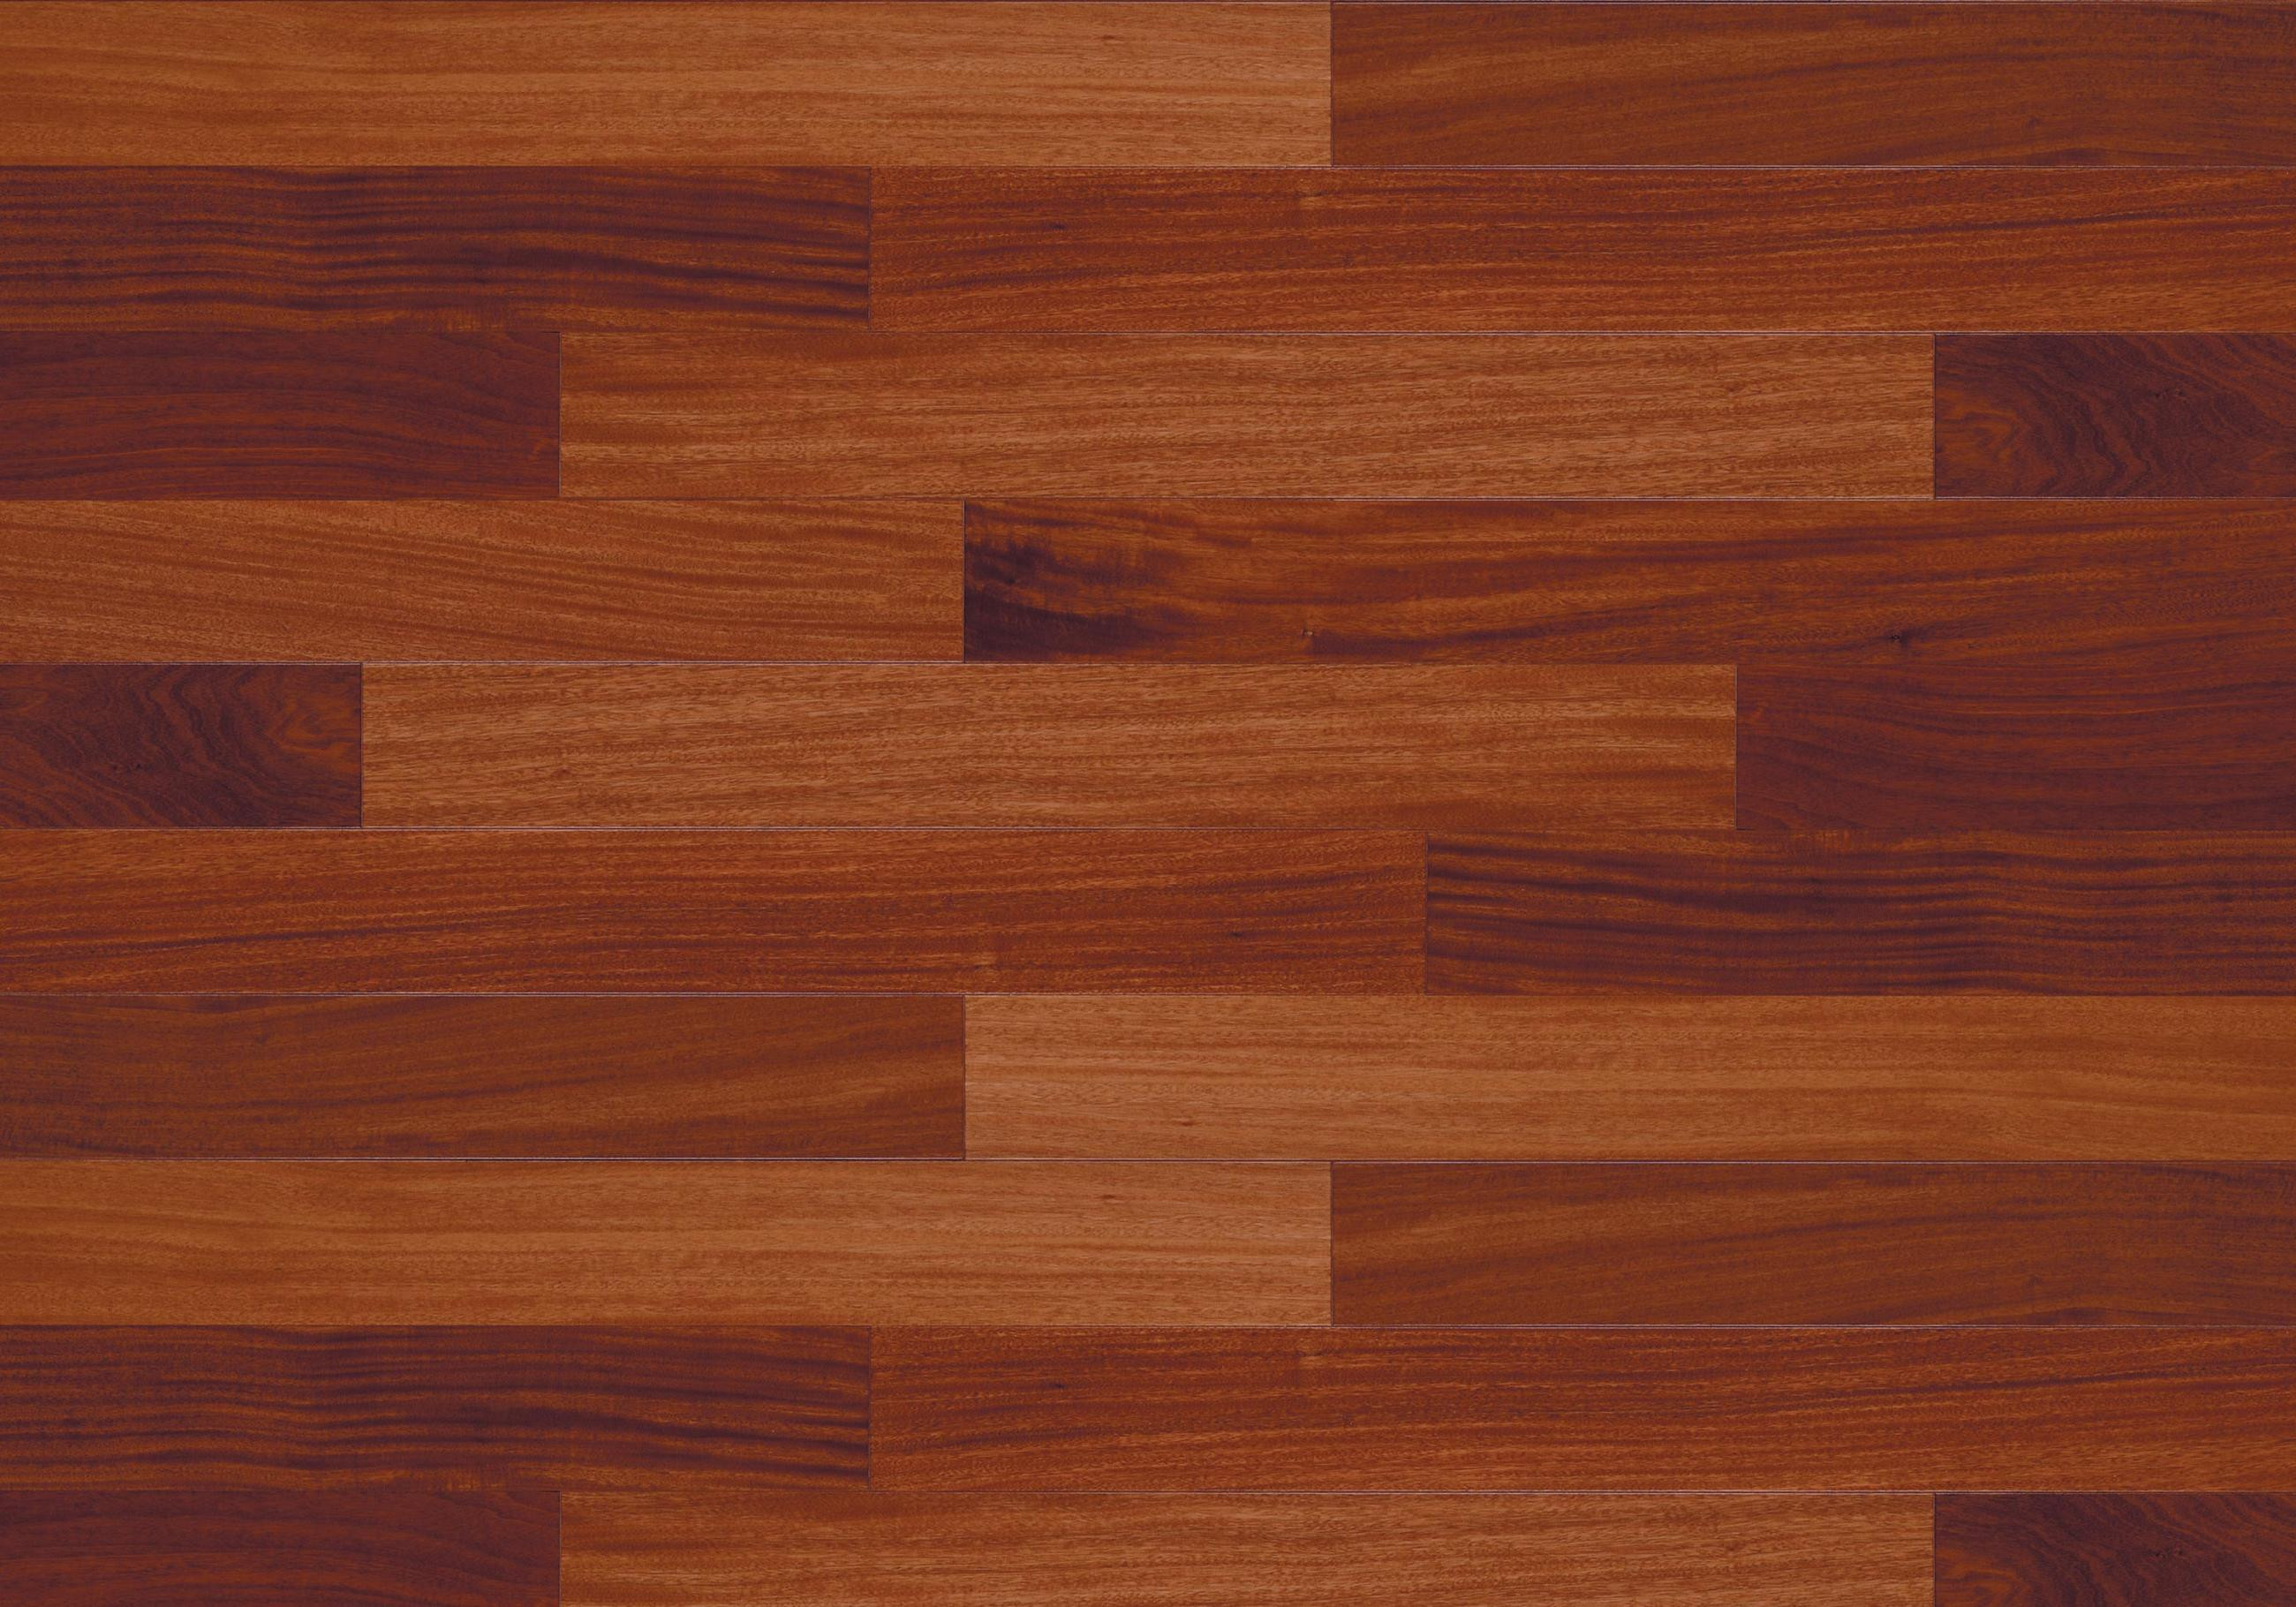 mahogany hardwood flooring home depot of breathtaking hard wood flooring beautiful floors are here only pertaining to breathtaking hard wood flooring natural designer santo mahogany continental hardwood ottawa cost near me toronto lowe